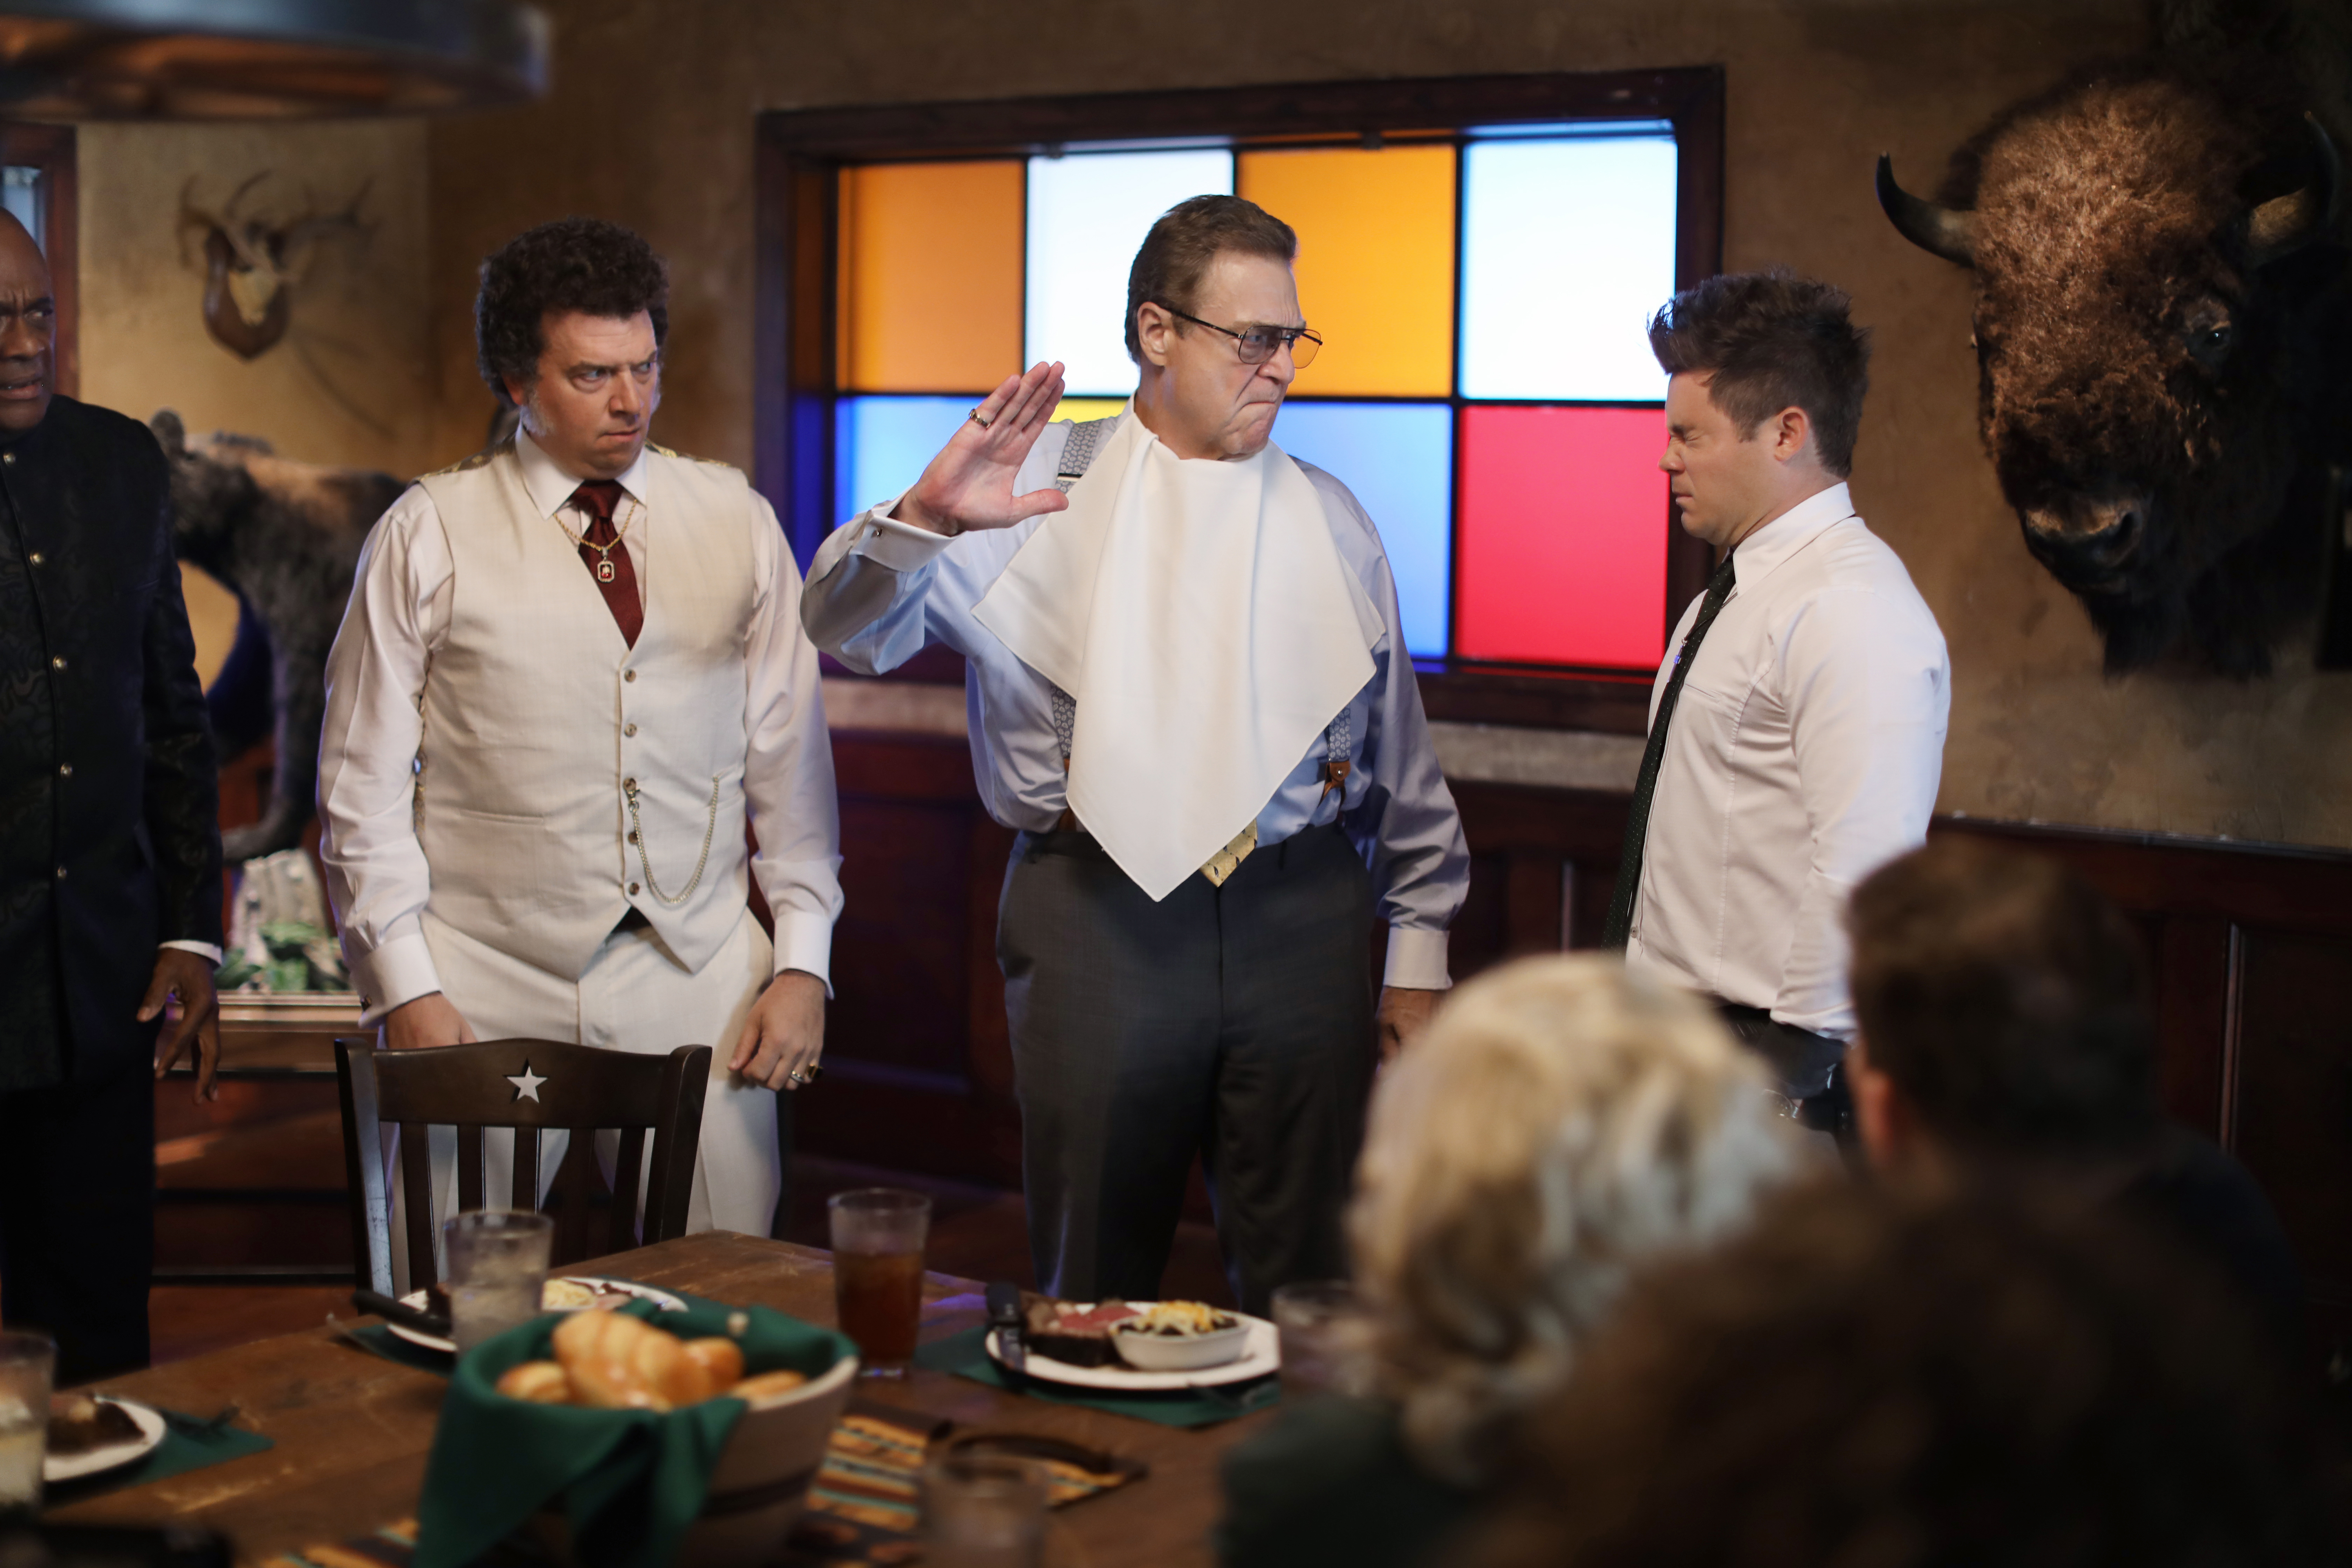 John Goodman with a napkin in his shirt, threatening to slap Adam DeVine, while Danny McBride stands on the left